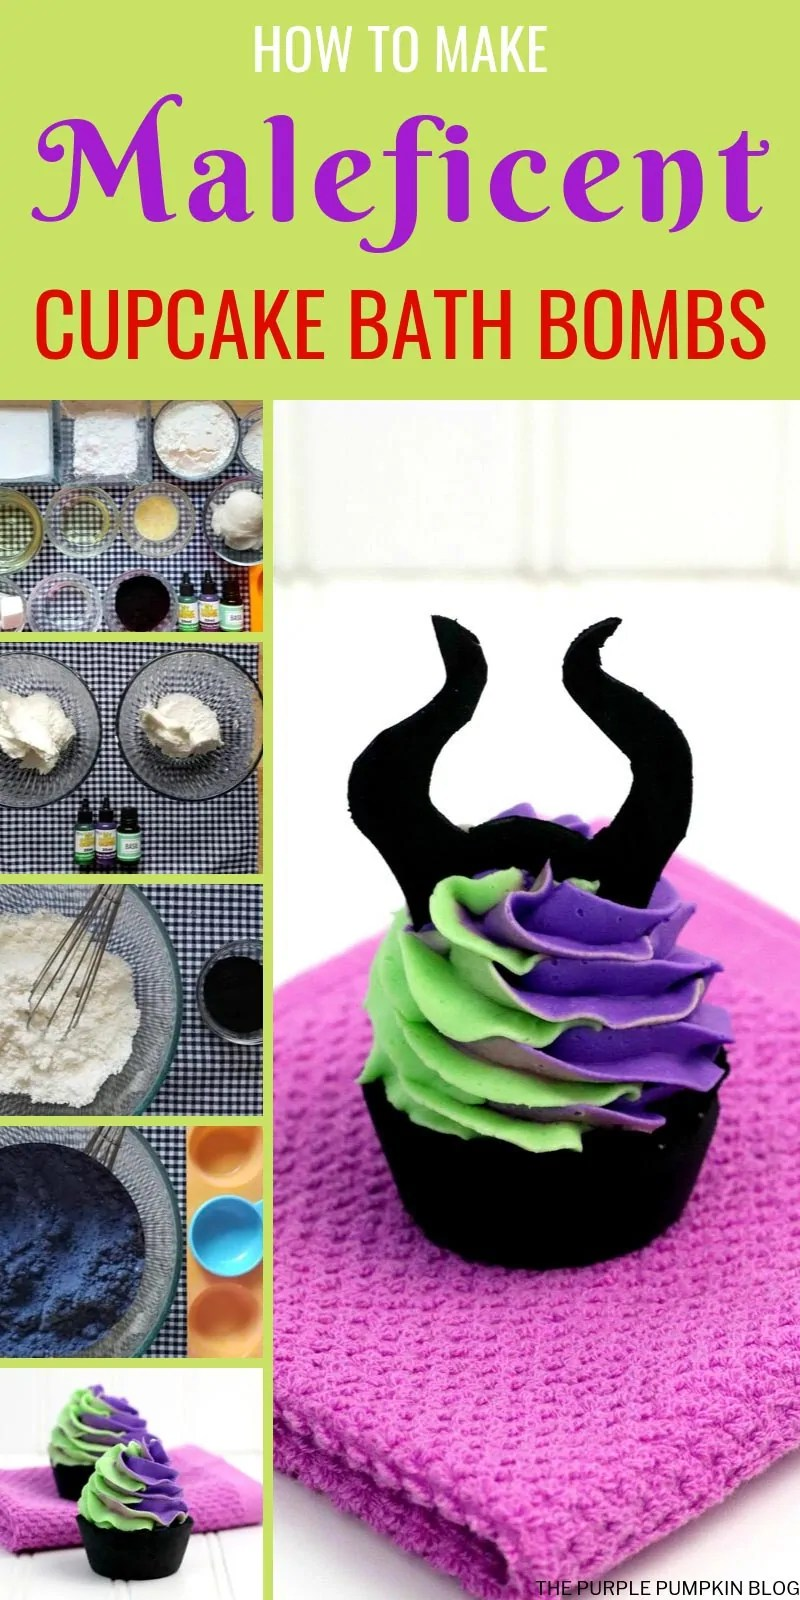 How to make Maleficent cupcake bath bombs